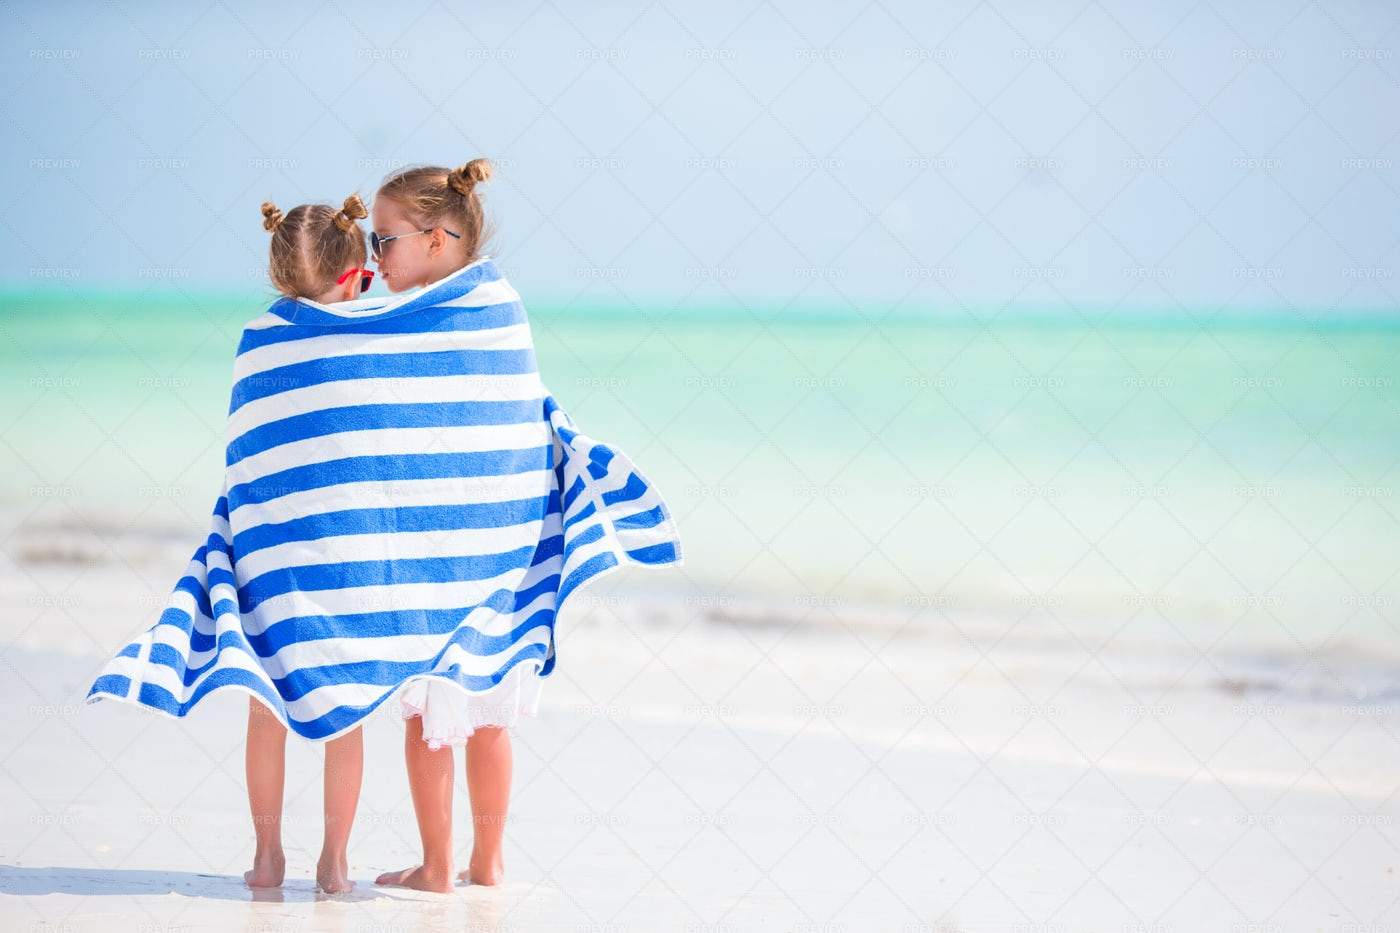 Girls Wrapped In A Towel: Stock Photos